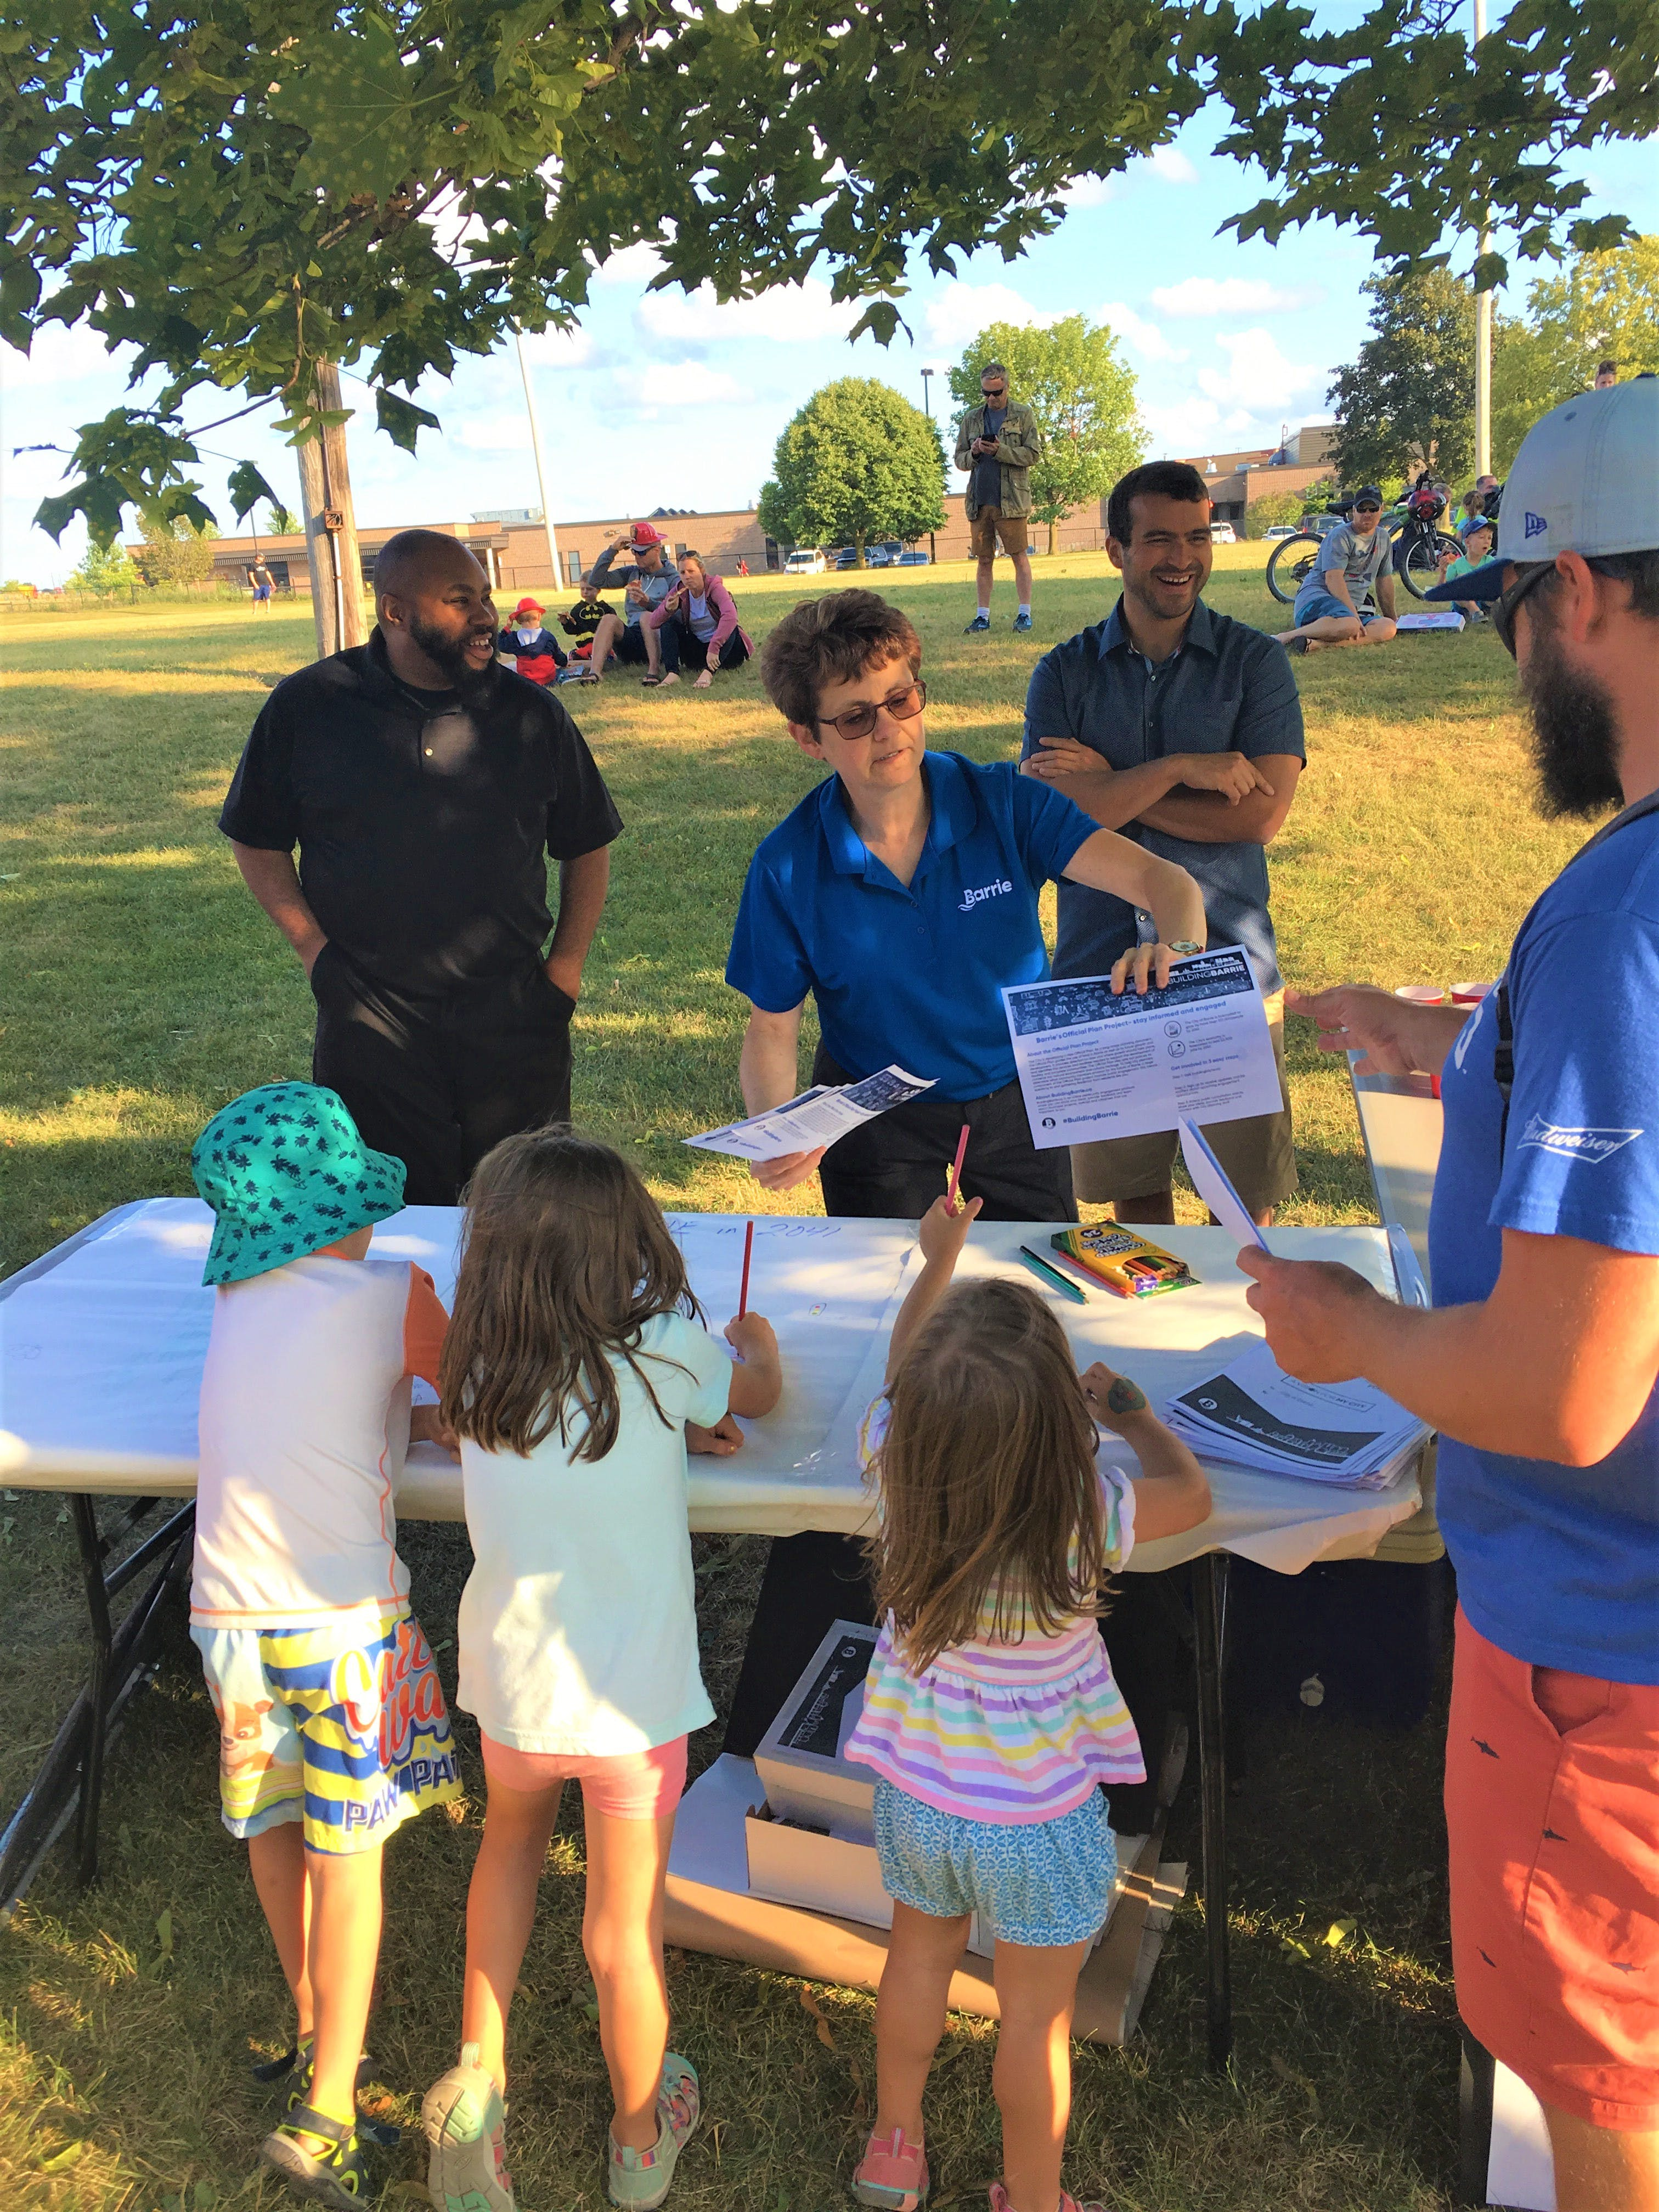 Engaging with community members at Barrie Fire and Emergency Service's Hot Summer Nights event